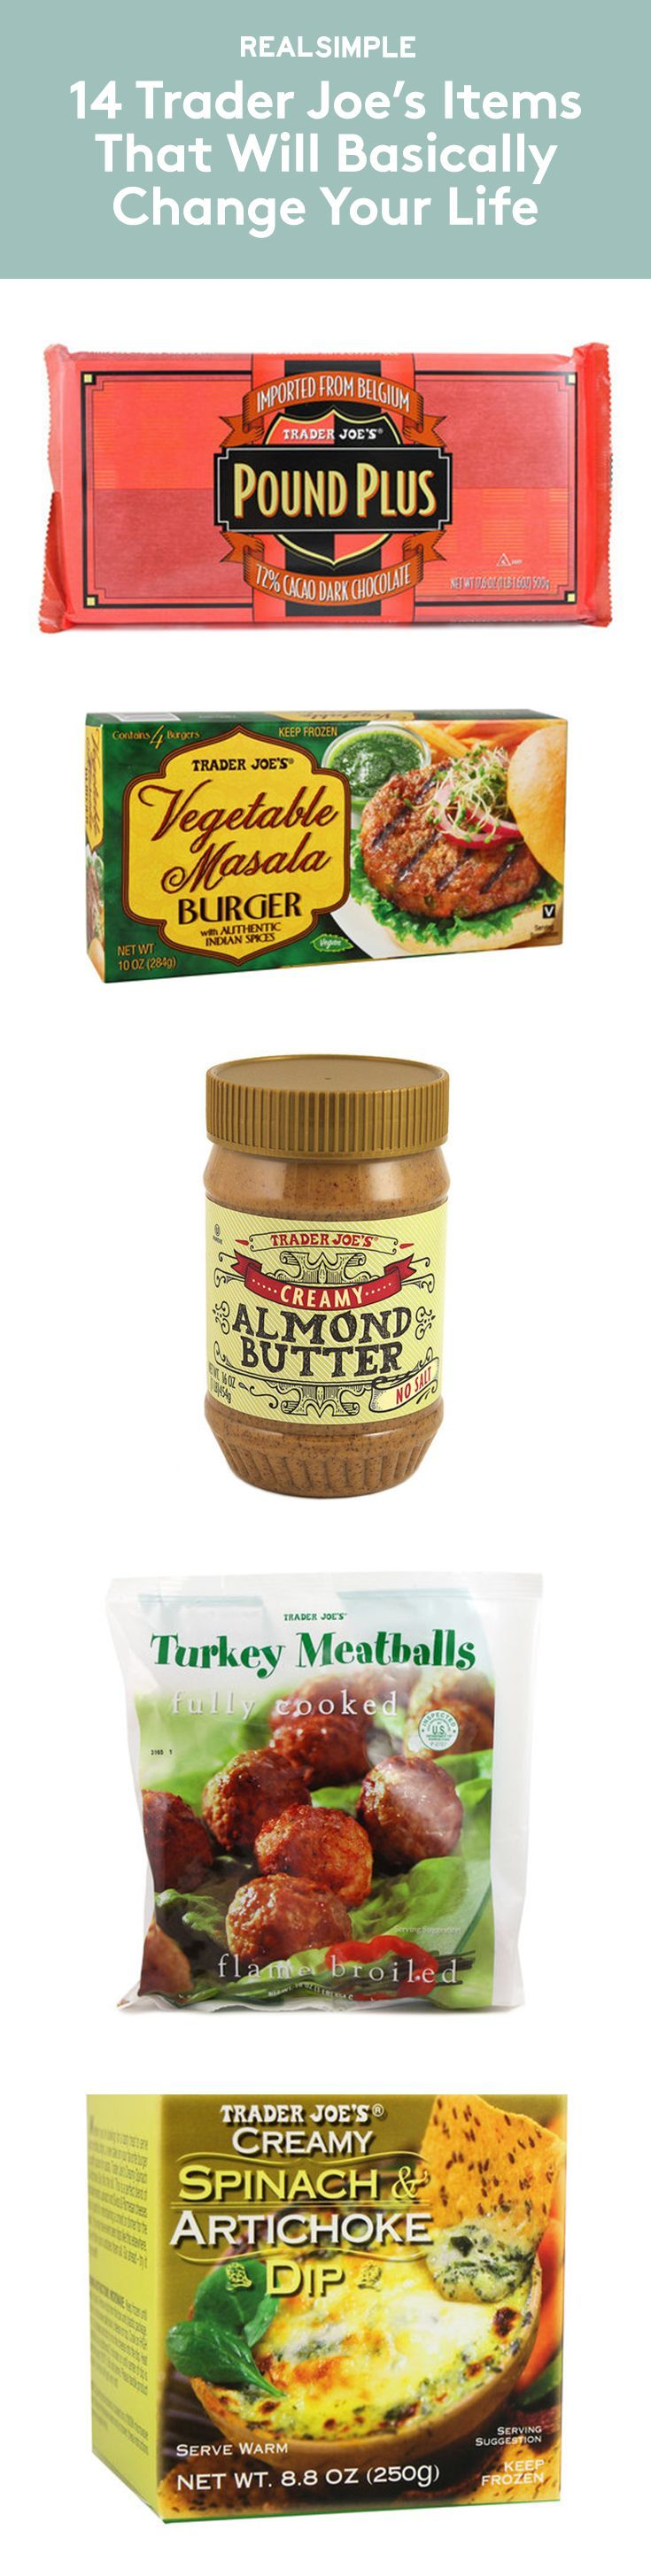 13 trader joes items that will basically change your life